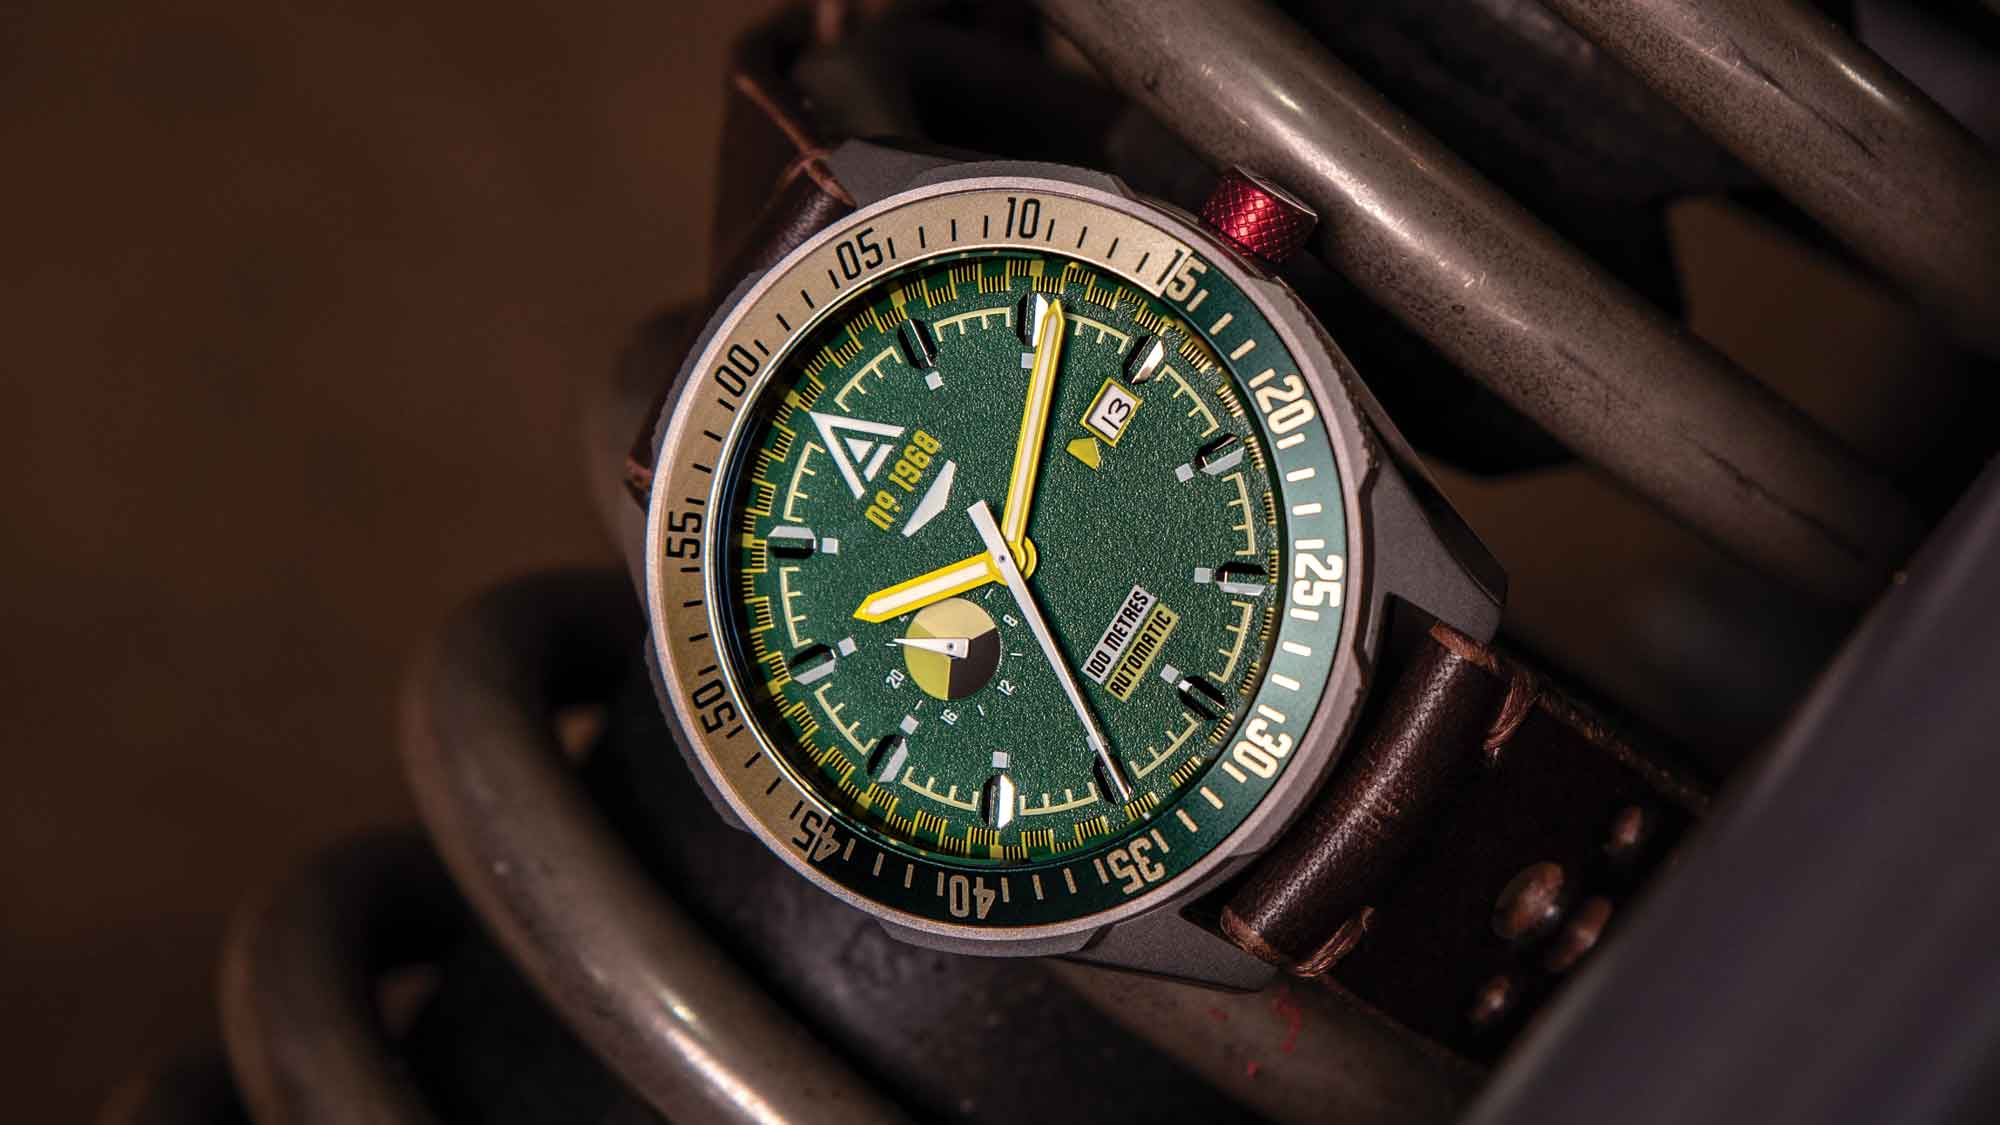 driving watches no 1968 green wt author